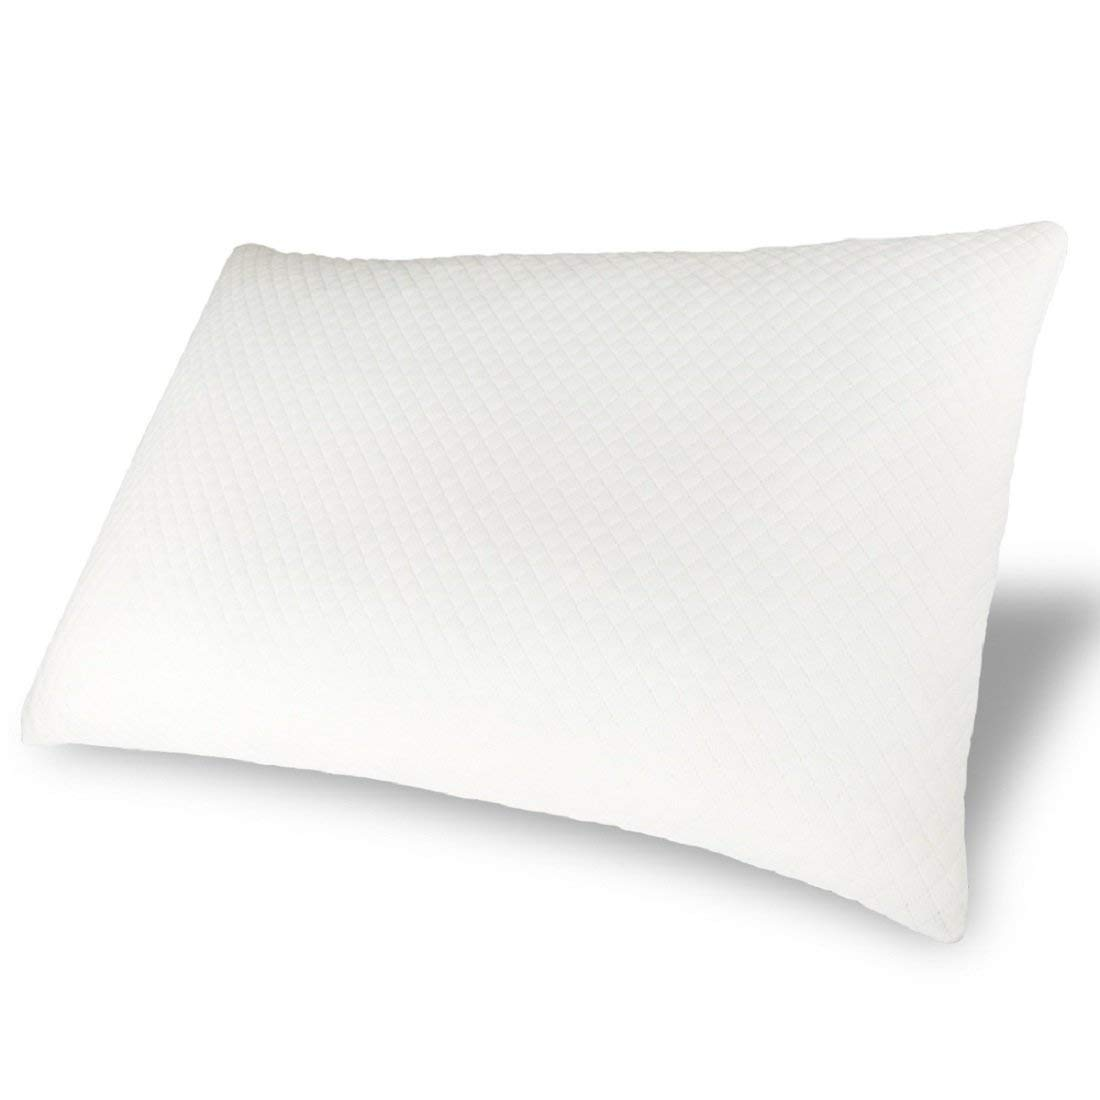 IcosyHome,Bed Pillow for Sleeping, Adjustable Natural Latex Foam Pillow,Hotel Loft Dust Mite with Zipper Removable Breathable Cooling Hypoallergenic Pillow Cover (Queen Size)